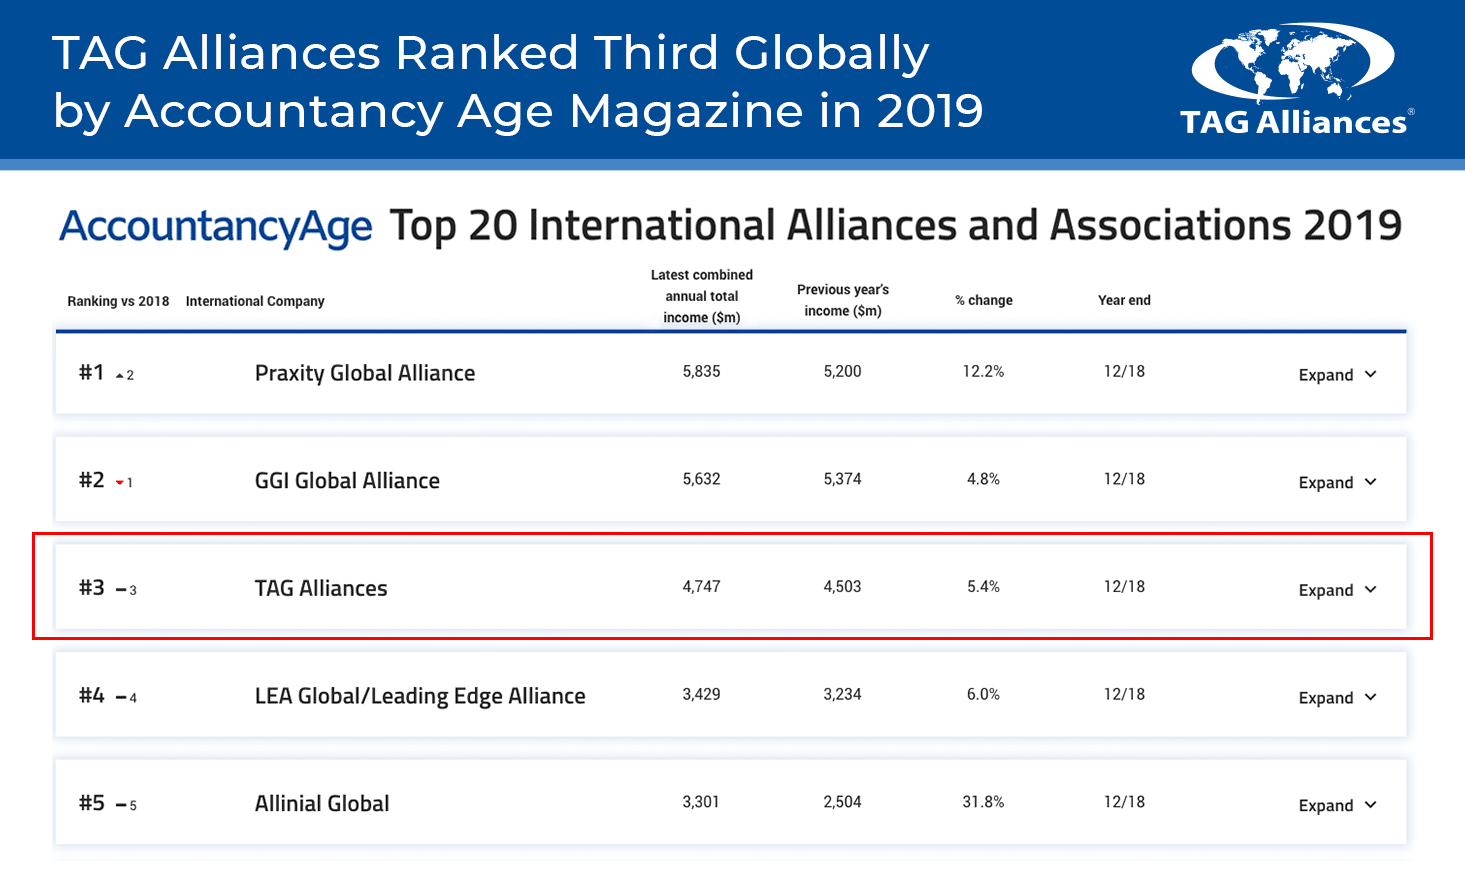 Top 20 International Alliances and Associations 2019